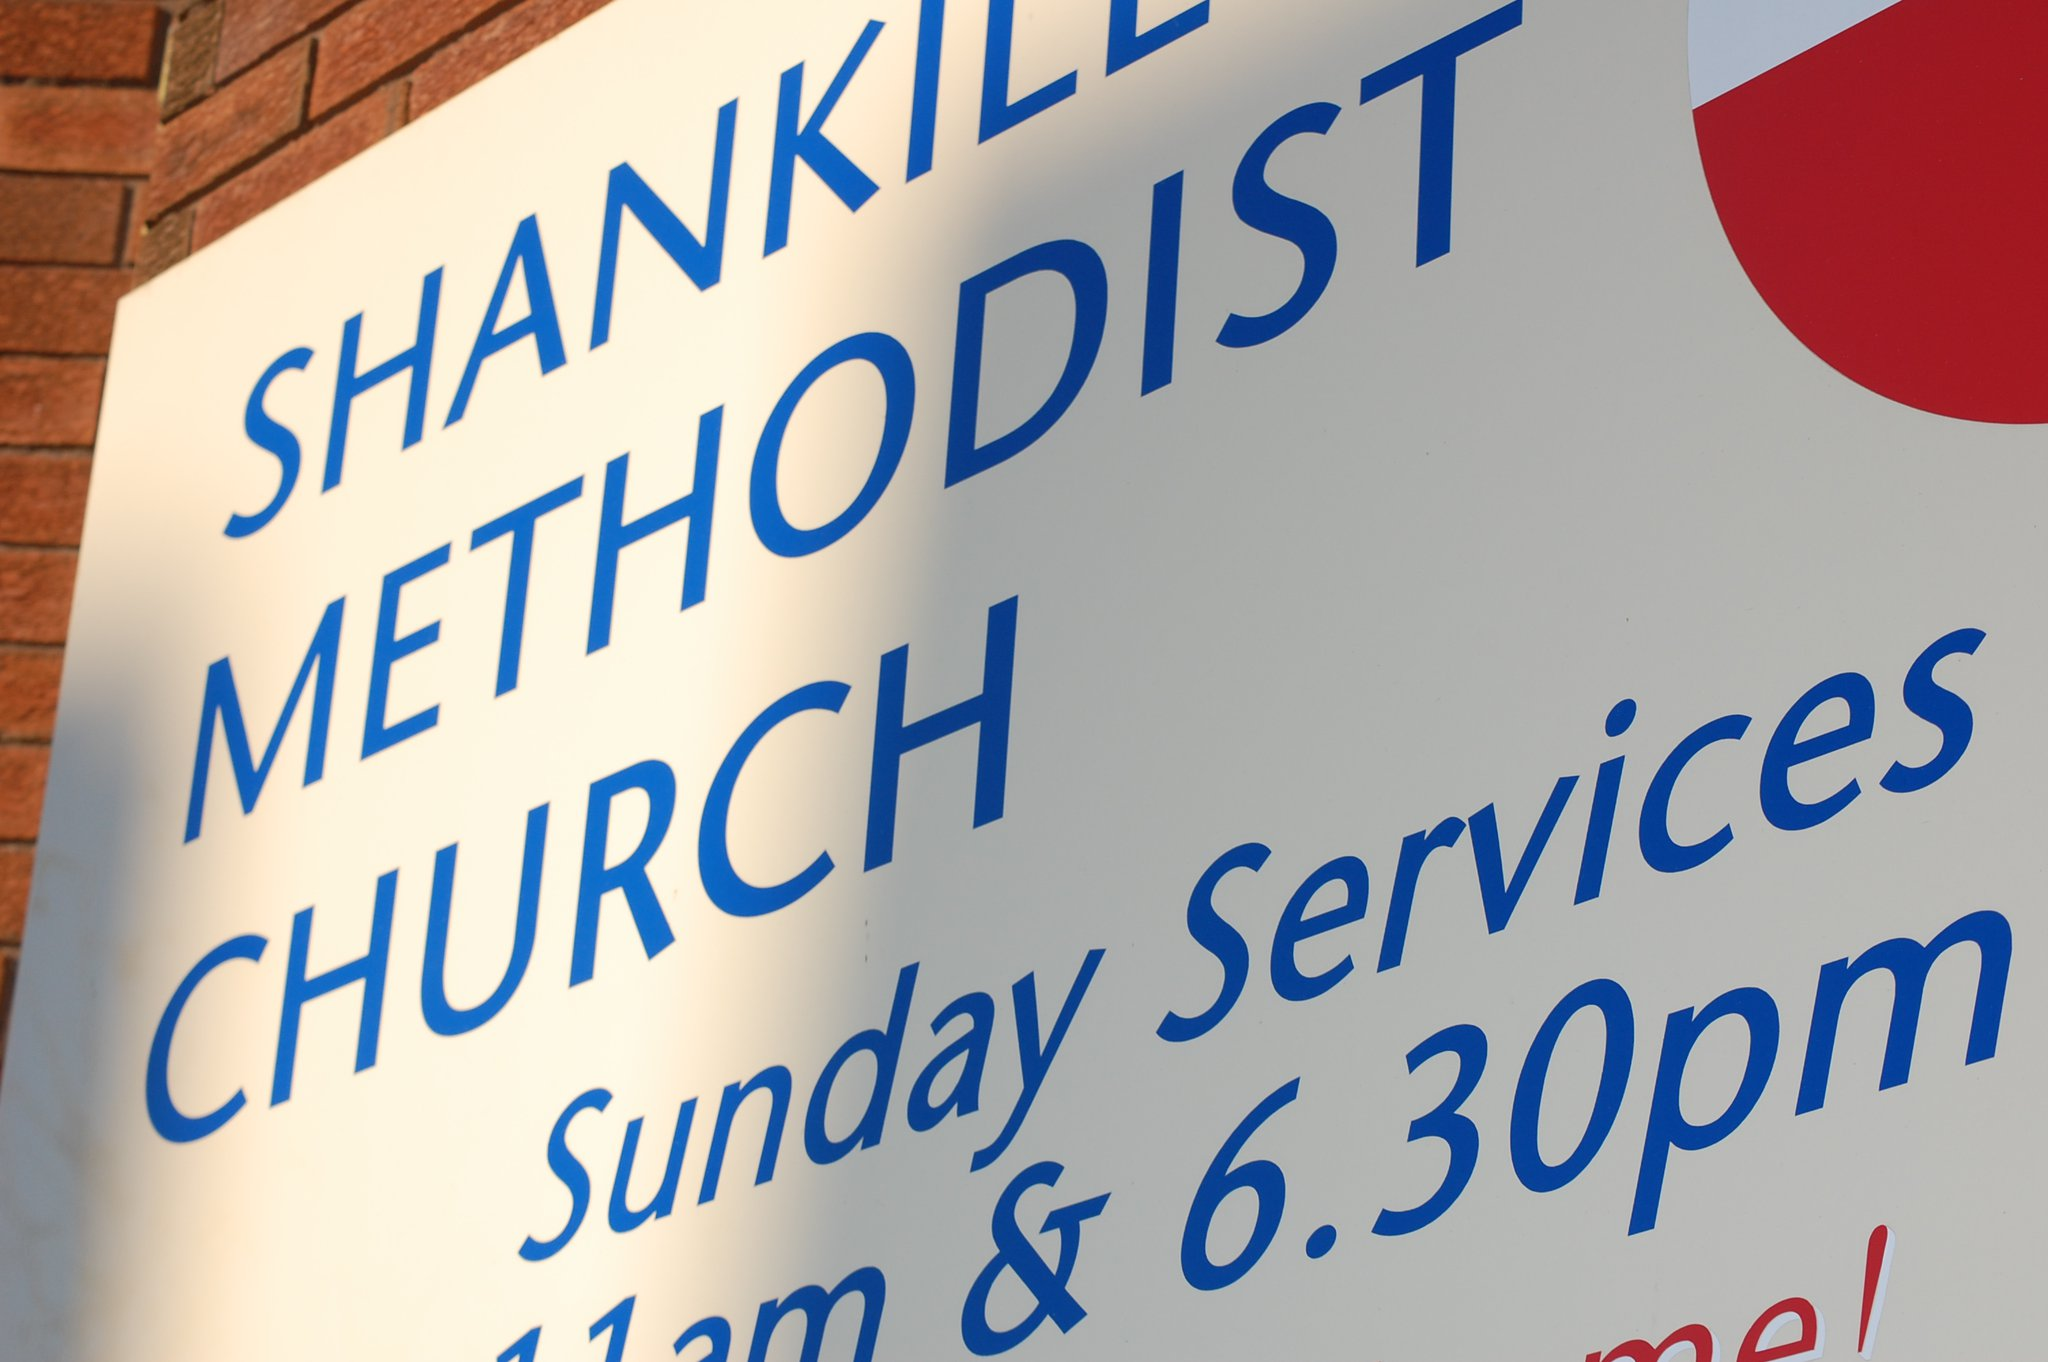 shankill methodist